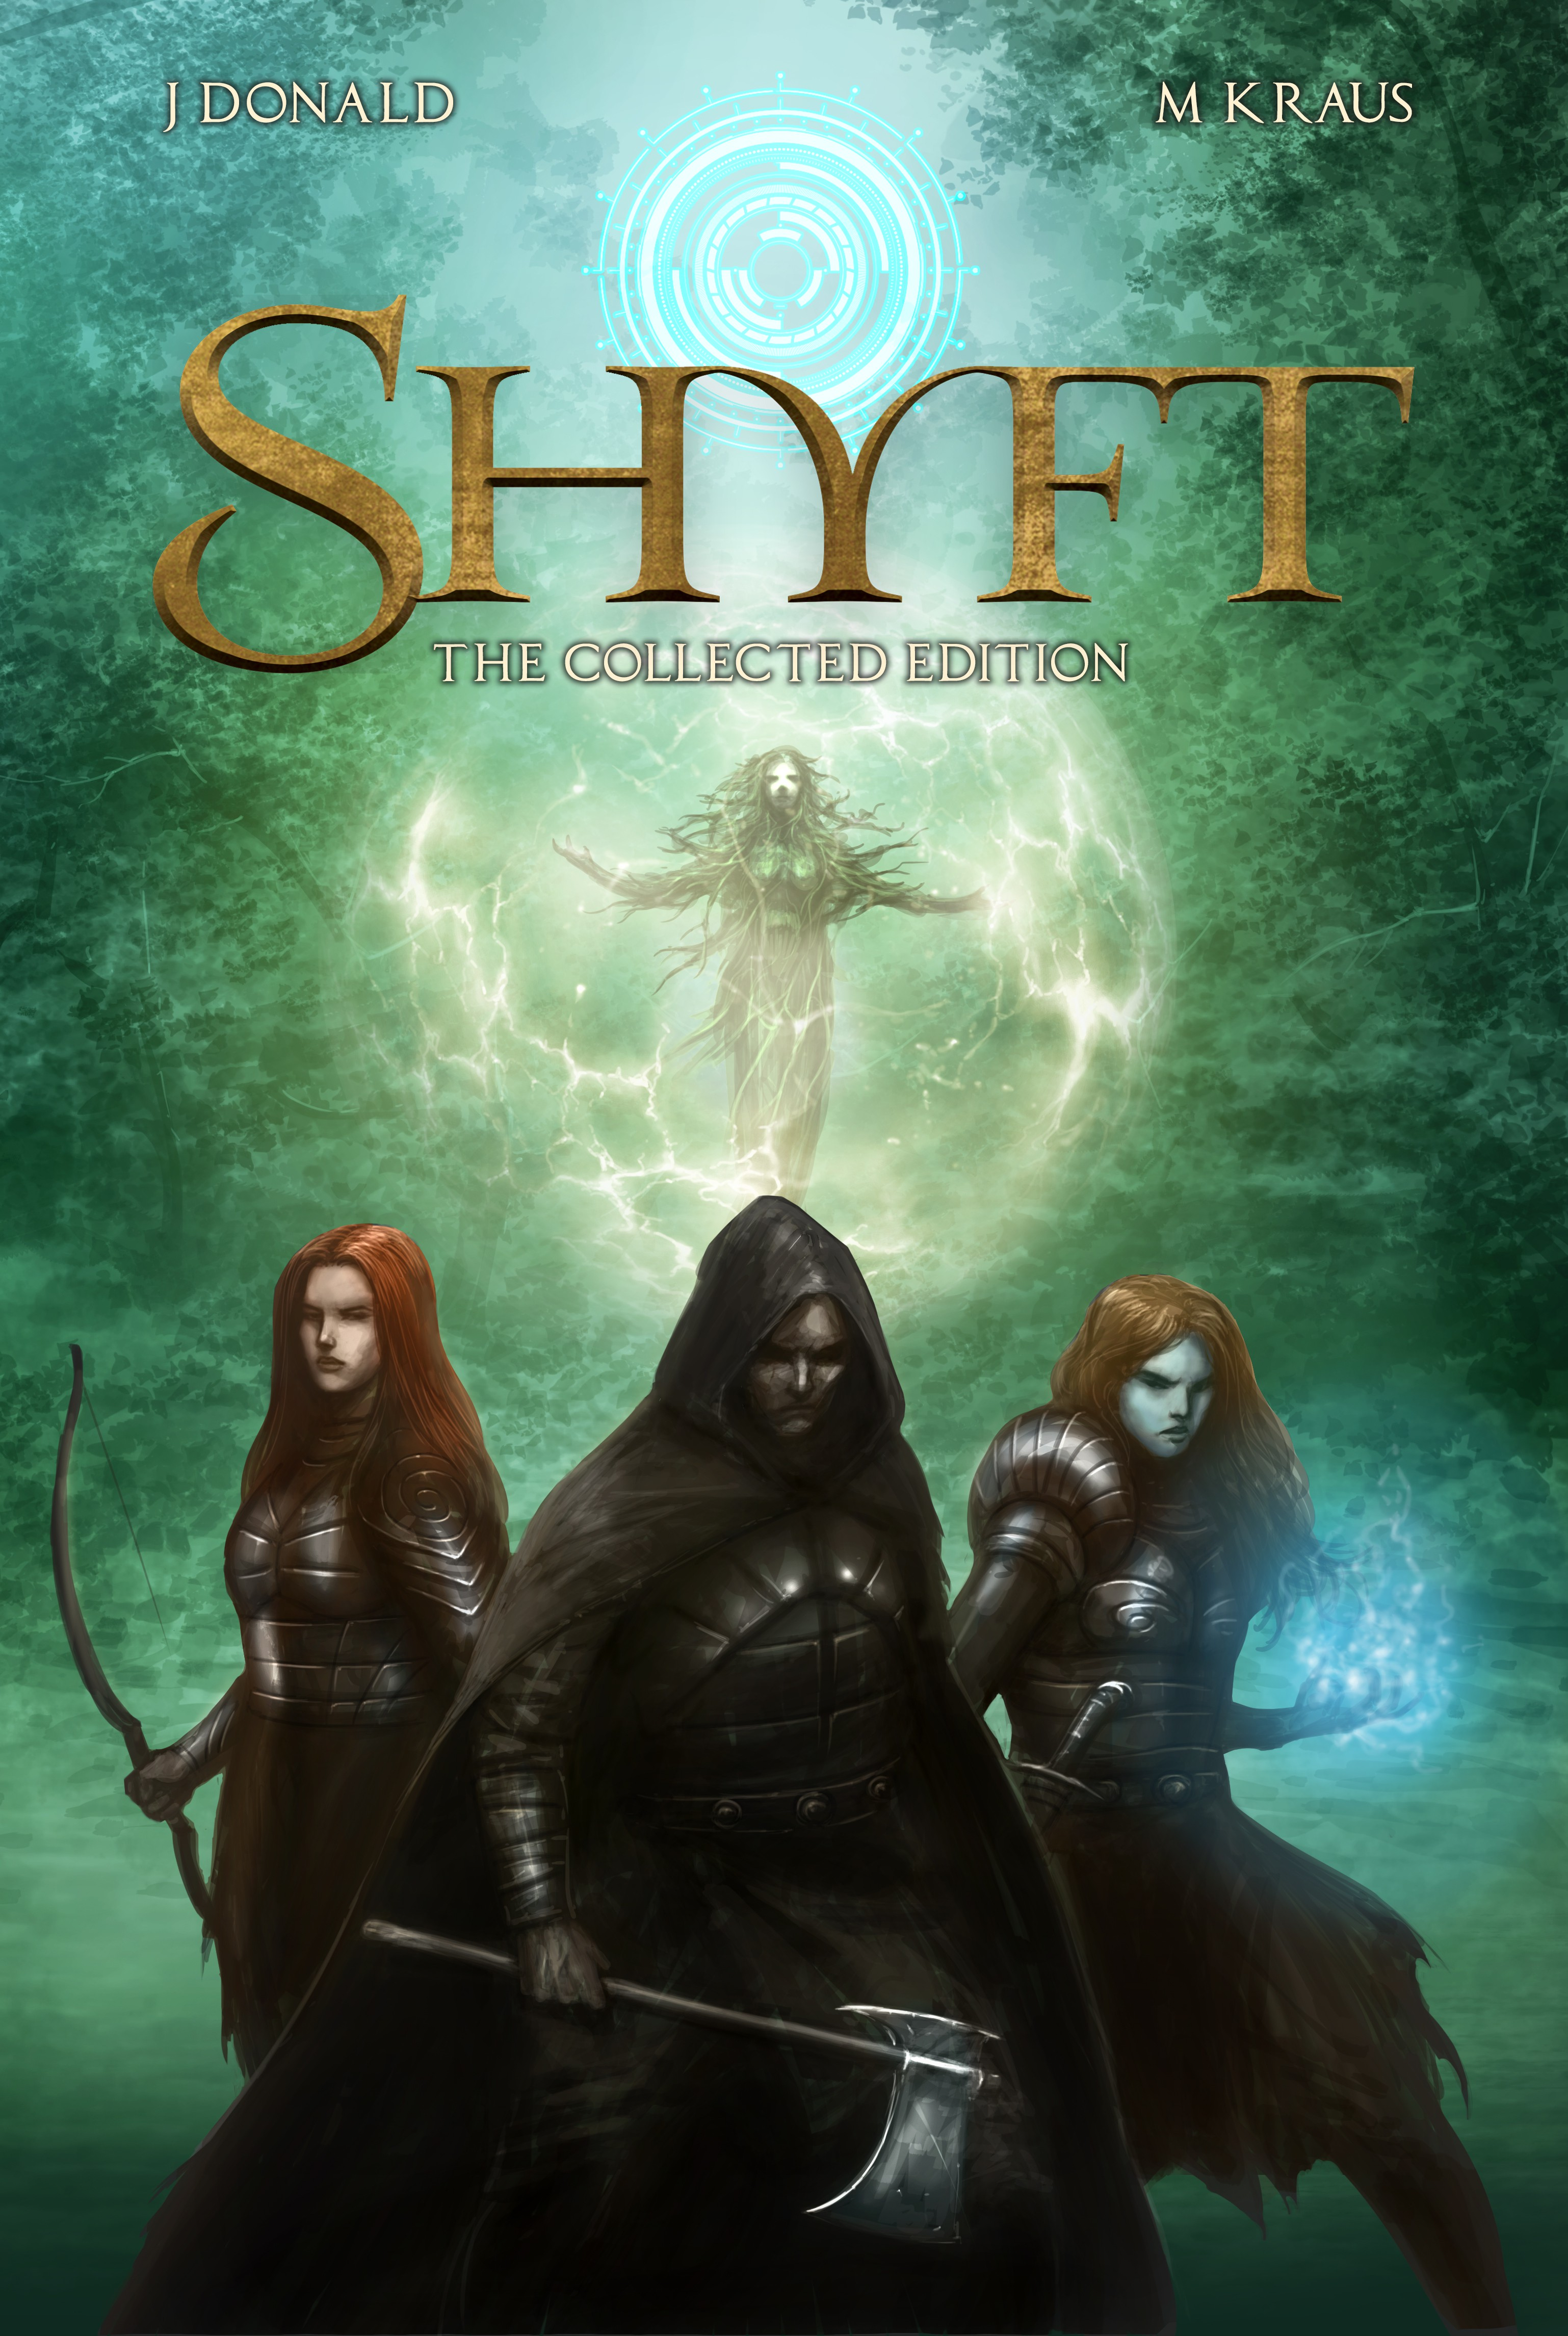 Book Cover(s) for a LitRPG Novel Series